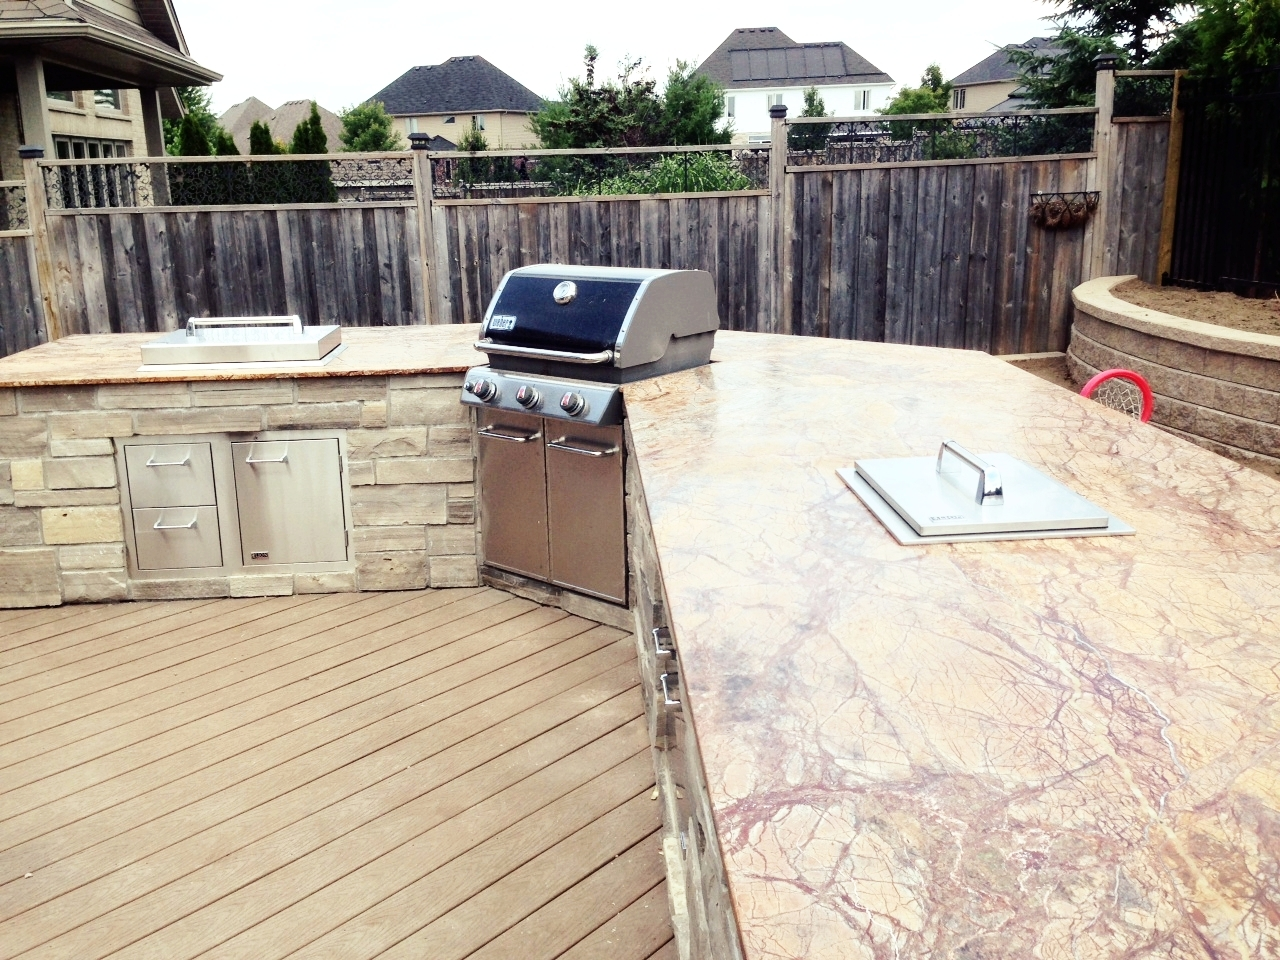 london-ontario-built-in-barbecue-bbq-grill-backyard-stone-landscaper-07.jpeg